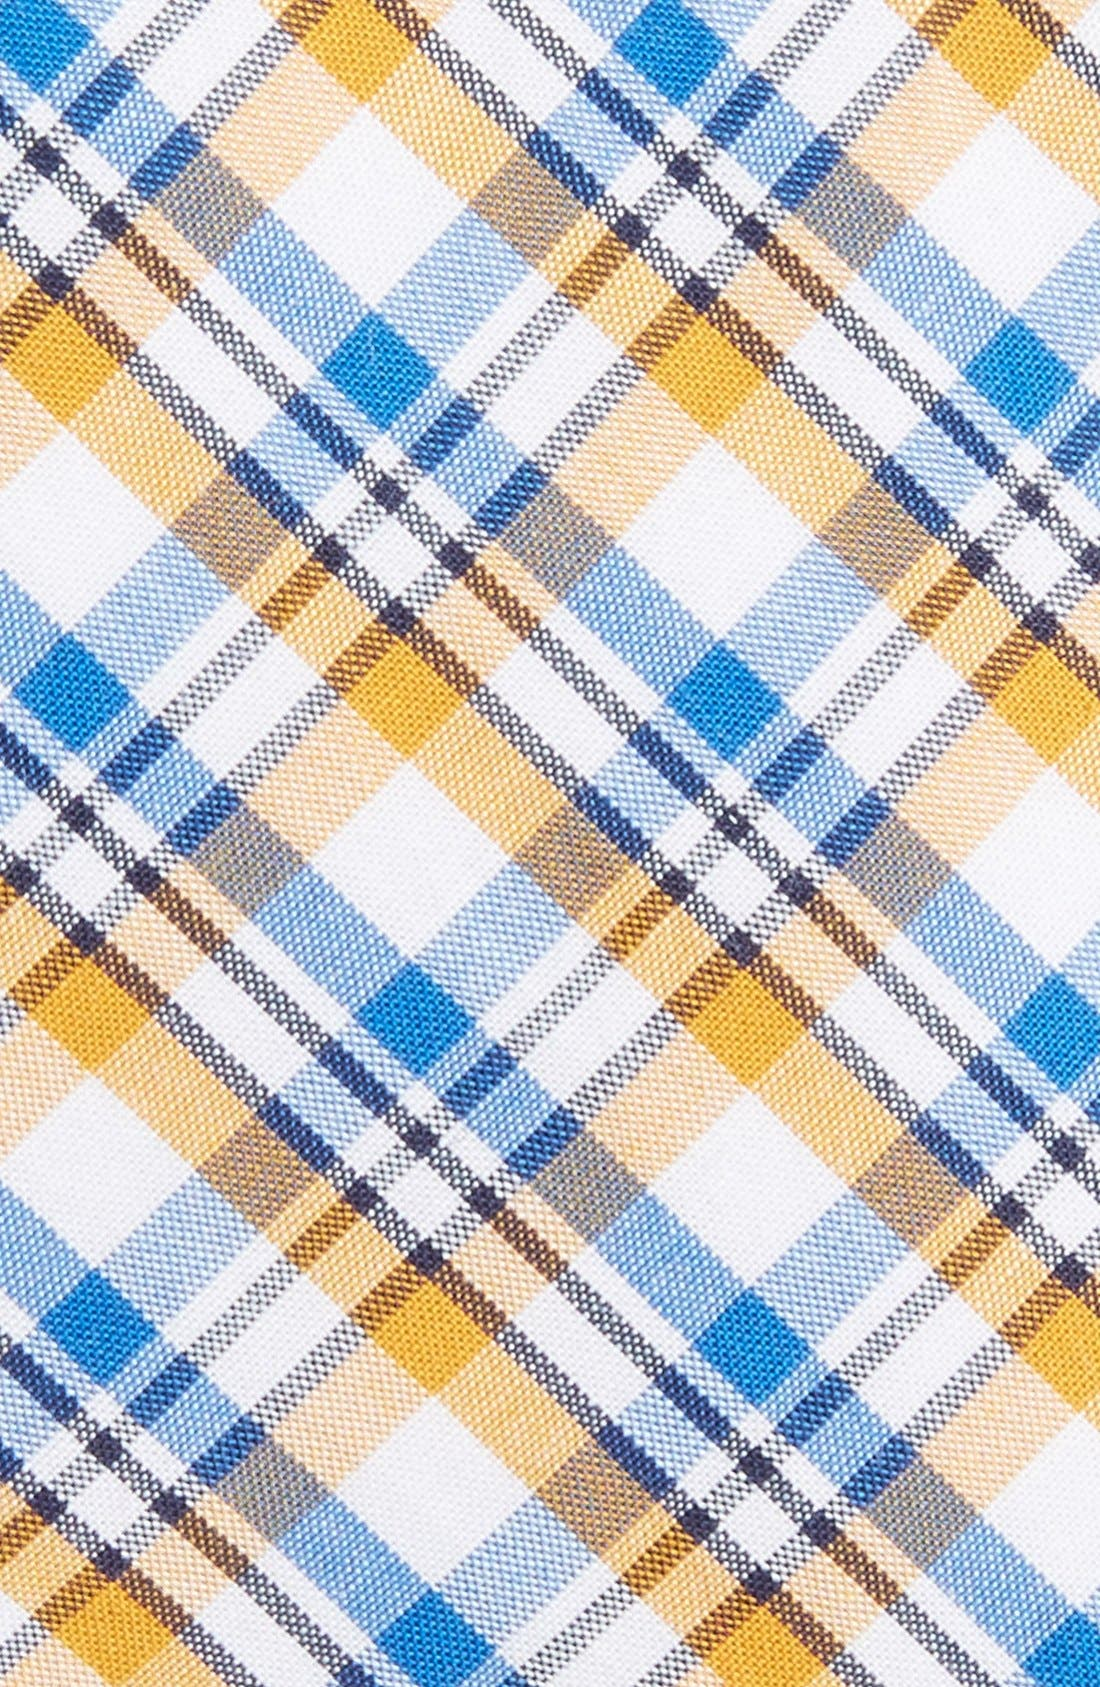 'Boomer' Plaid Cotton Tie,                             Alternate thumbnail 8, color,